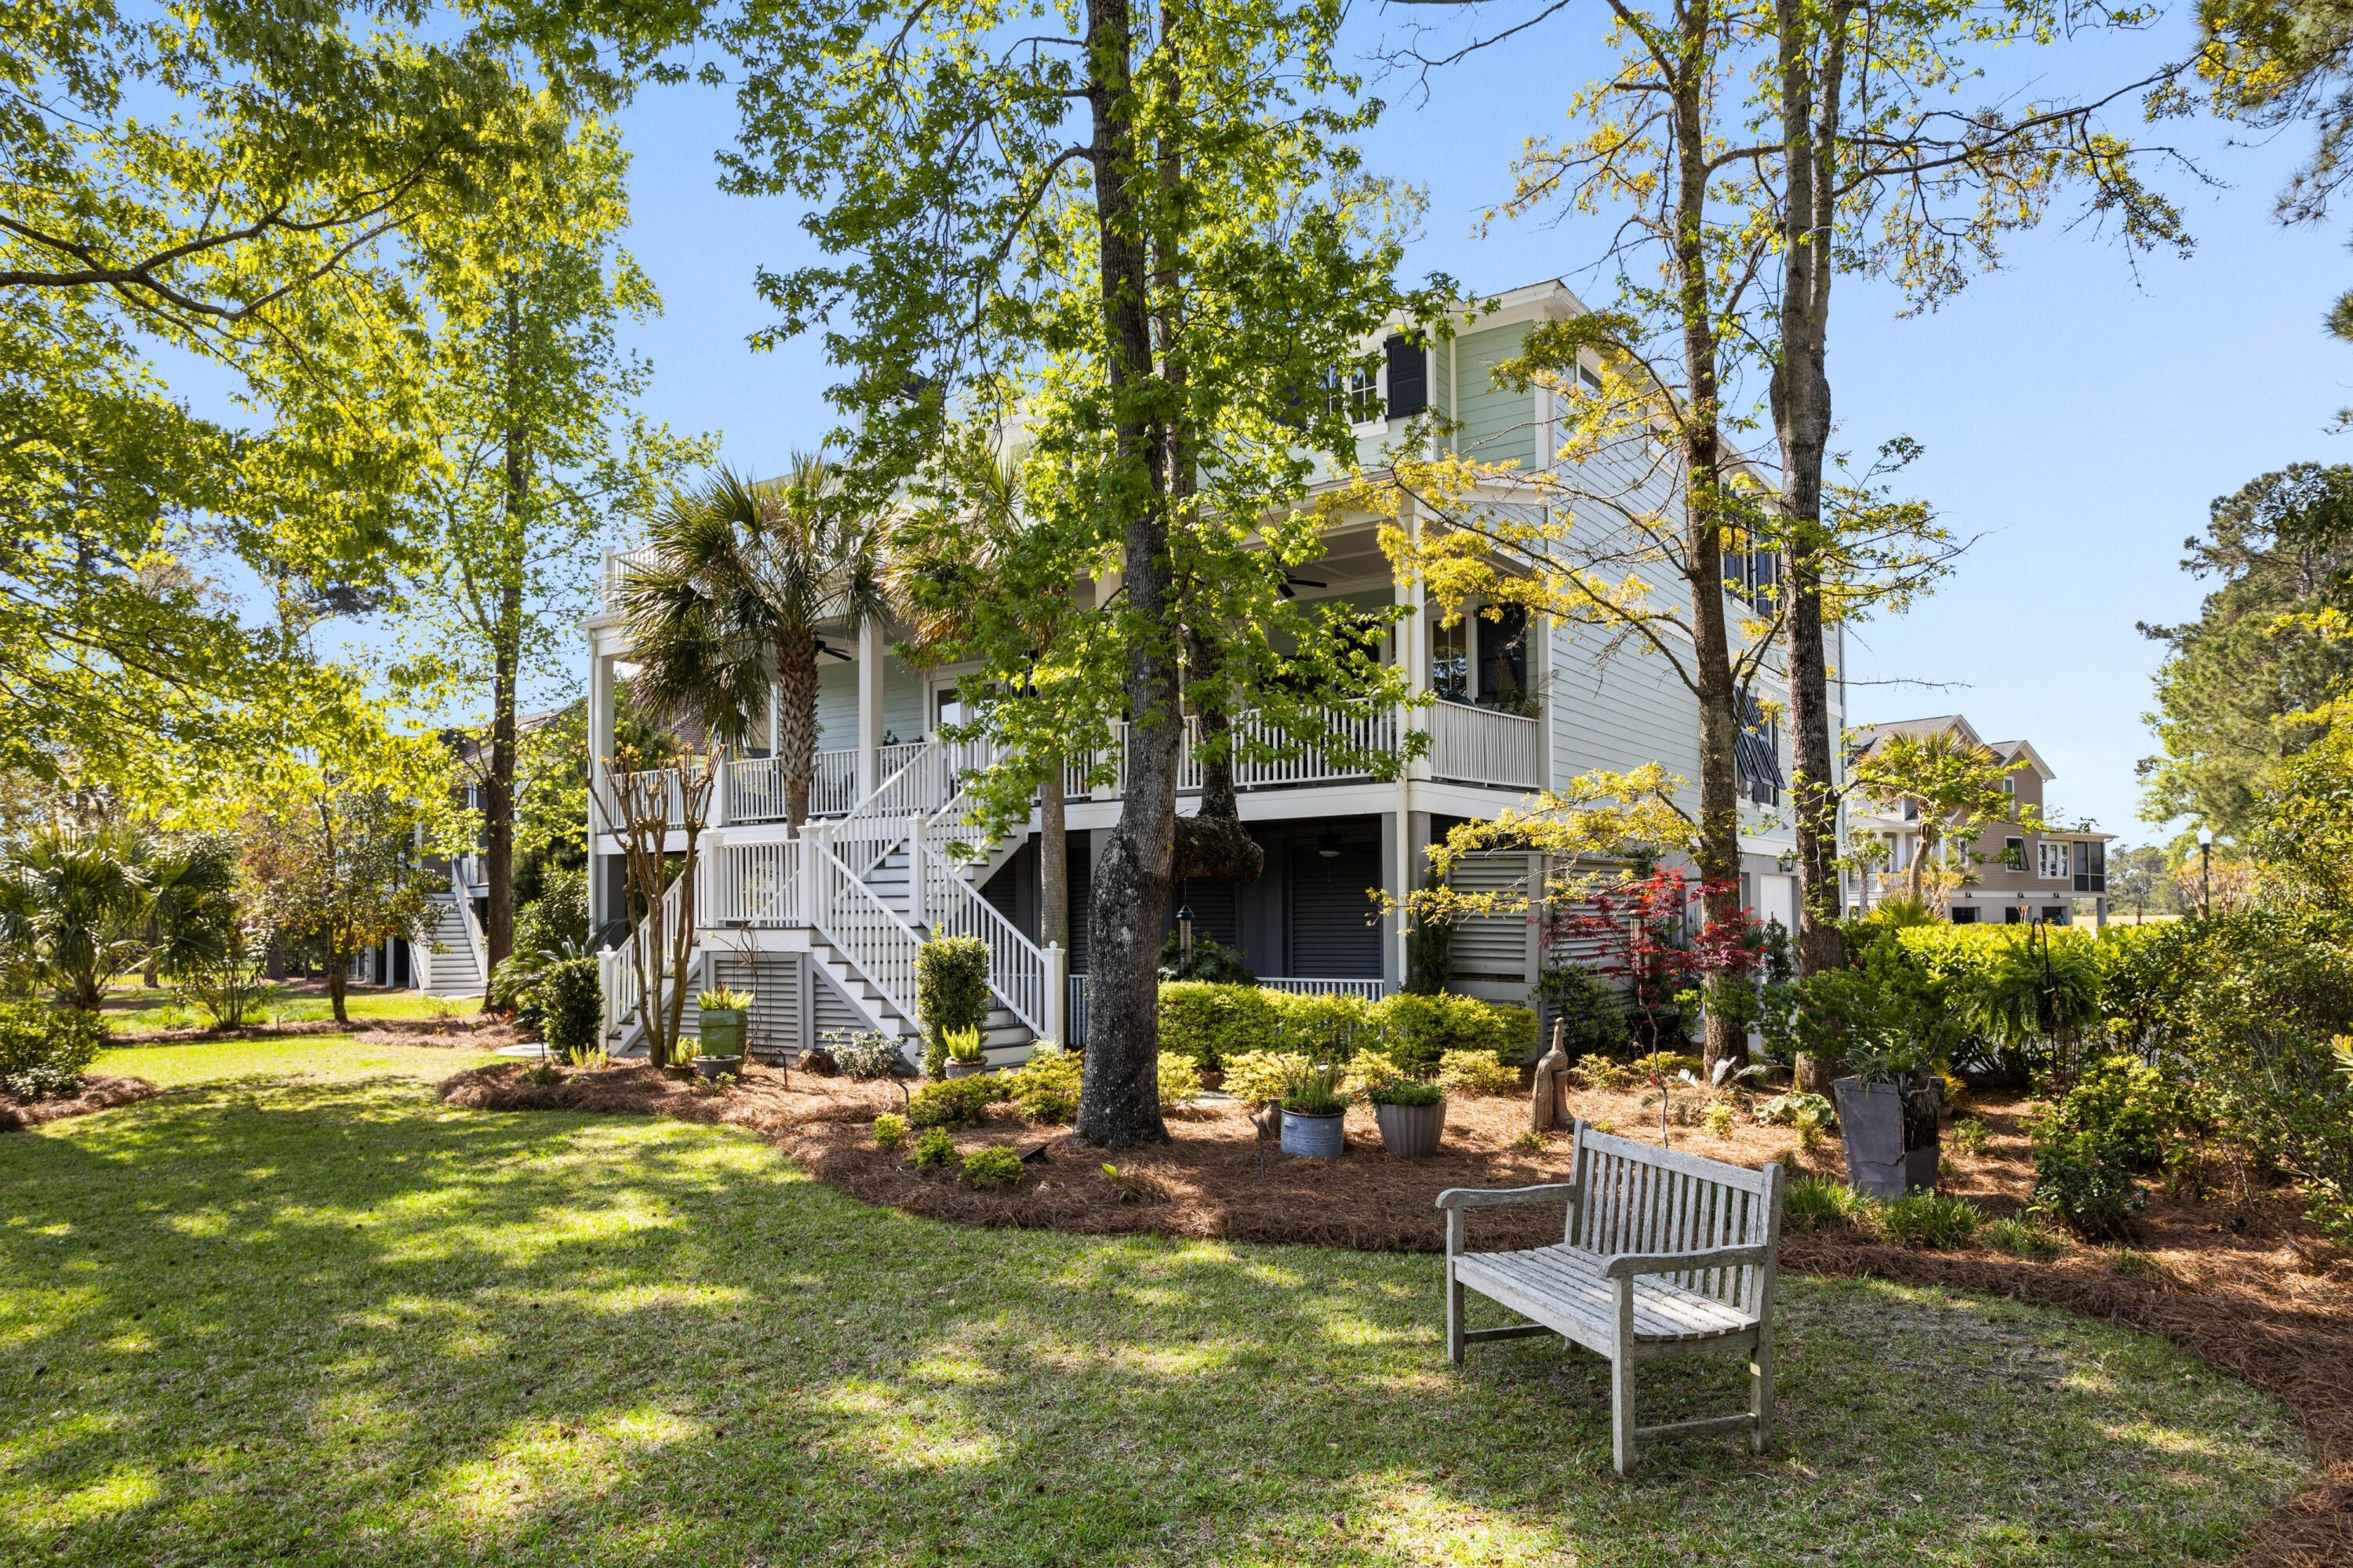 Rivertowne Country Club Homes For Sale - 1629 Rivertowne Country Club, Mount Pleasant, SC - 11